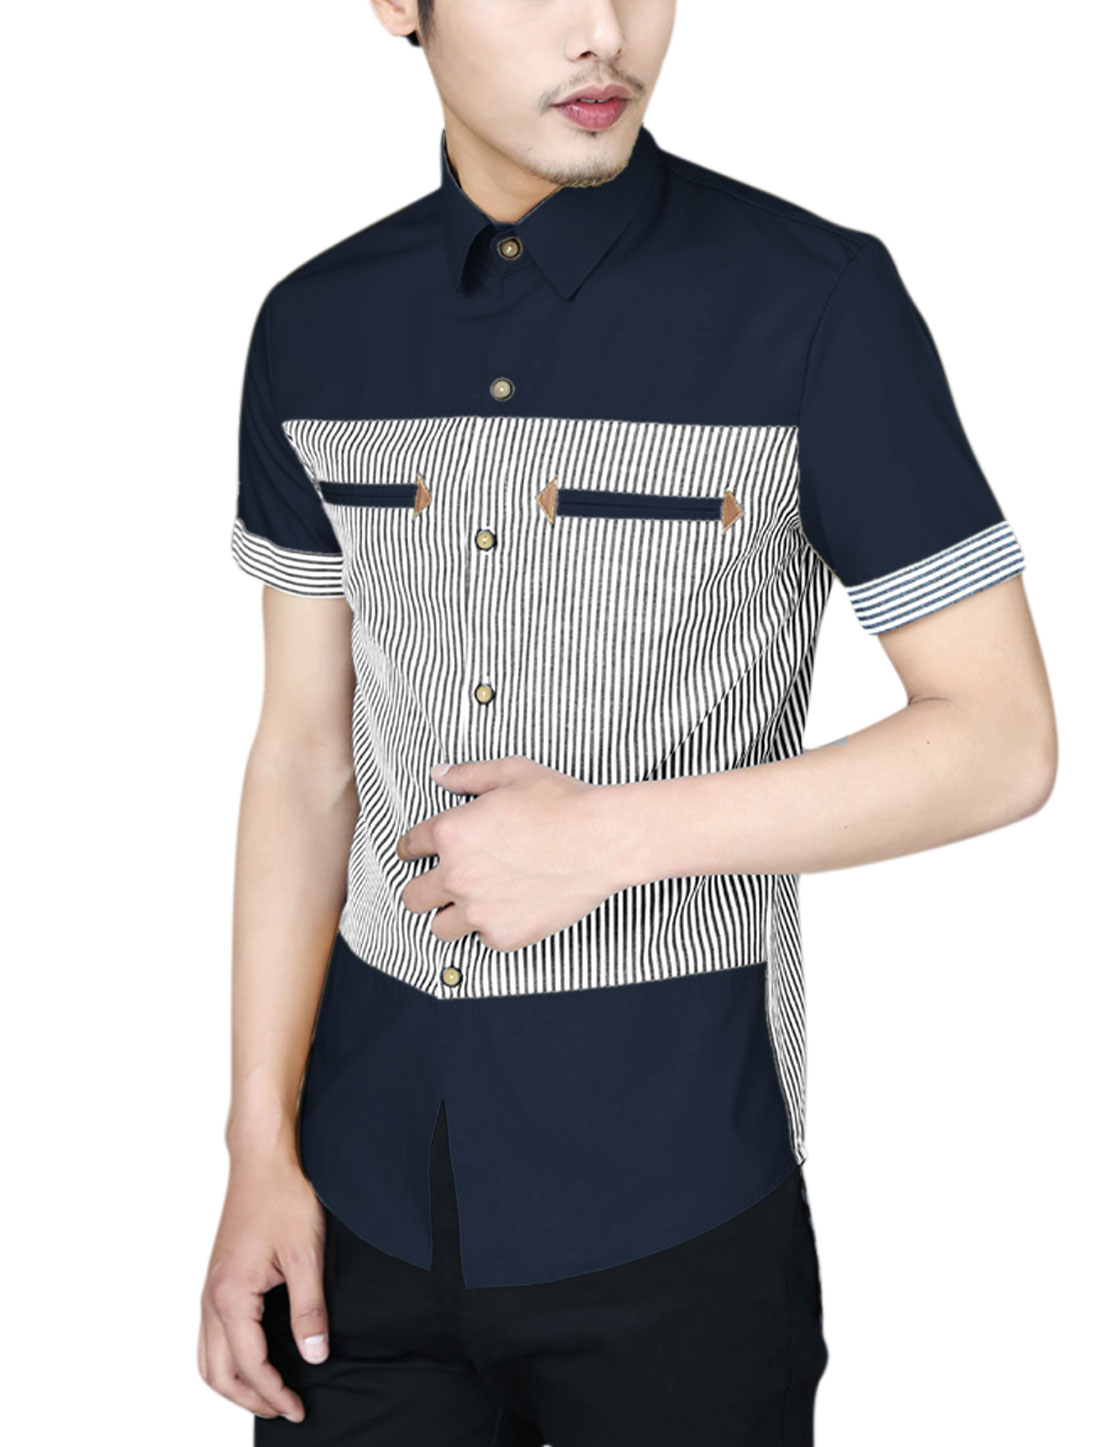 Men Summer Fit Short Sleeve Bar Striped Contrast Color Casual Shirt Navy Blue M